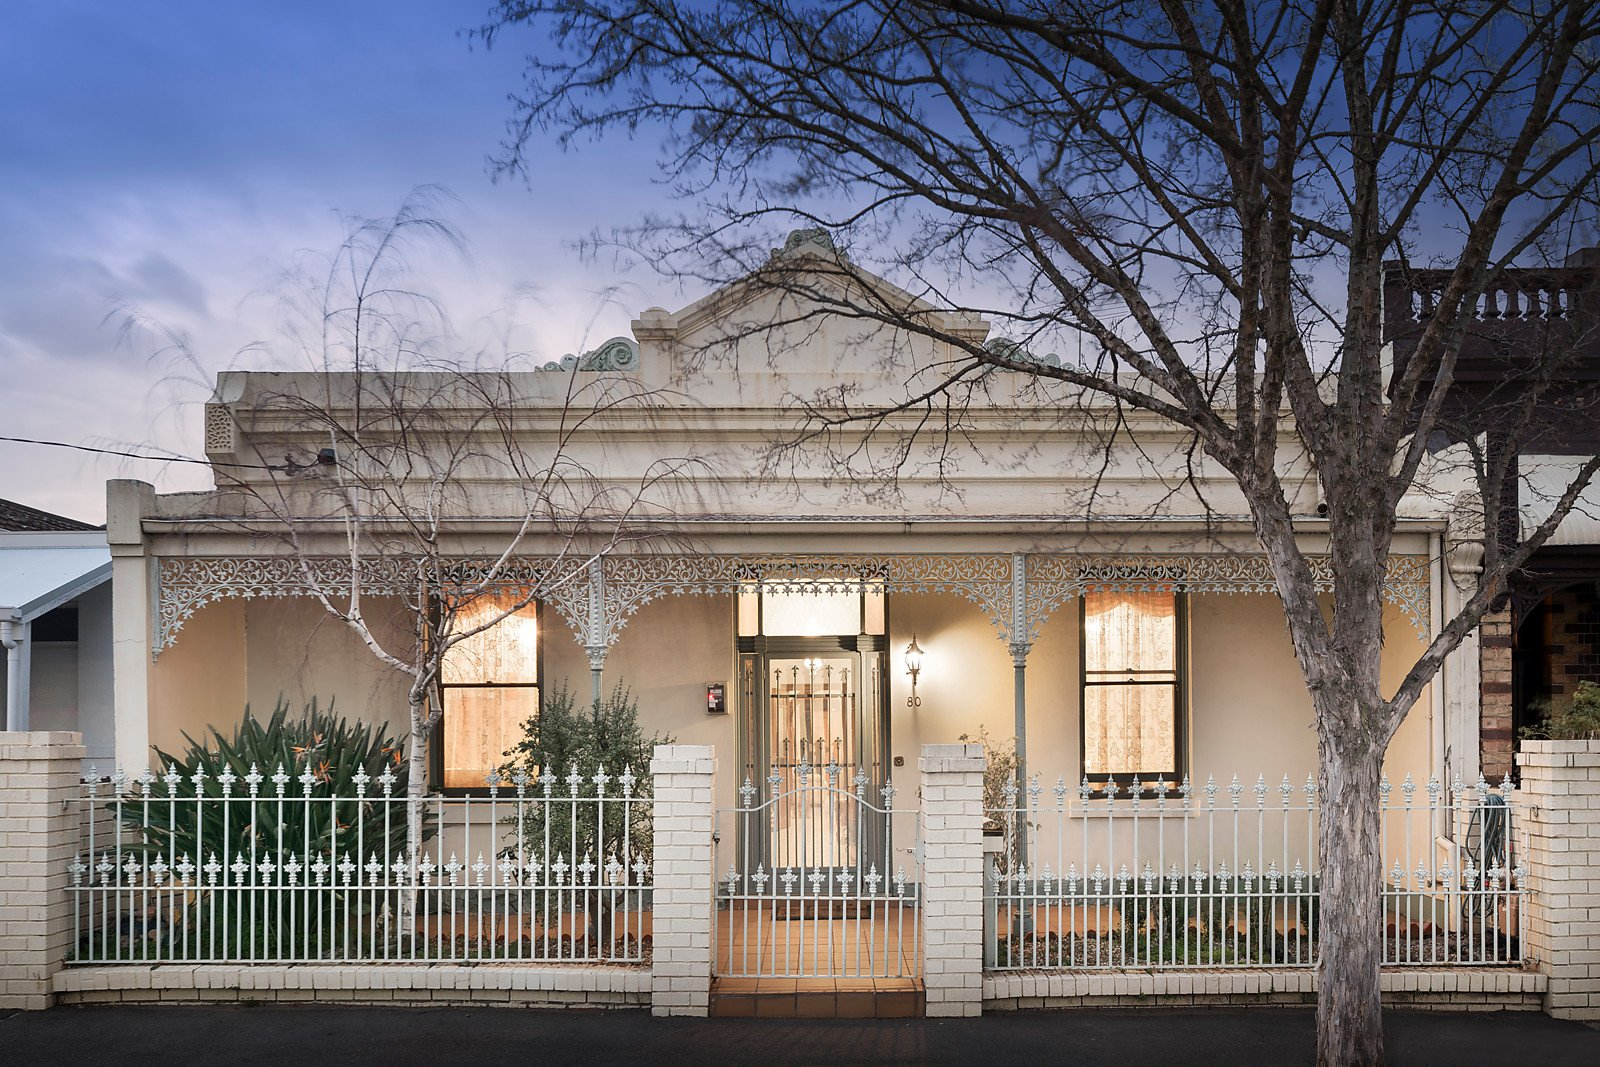 80 Fergie Street, Fitzroy North, VIC, 3068 image 1